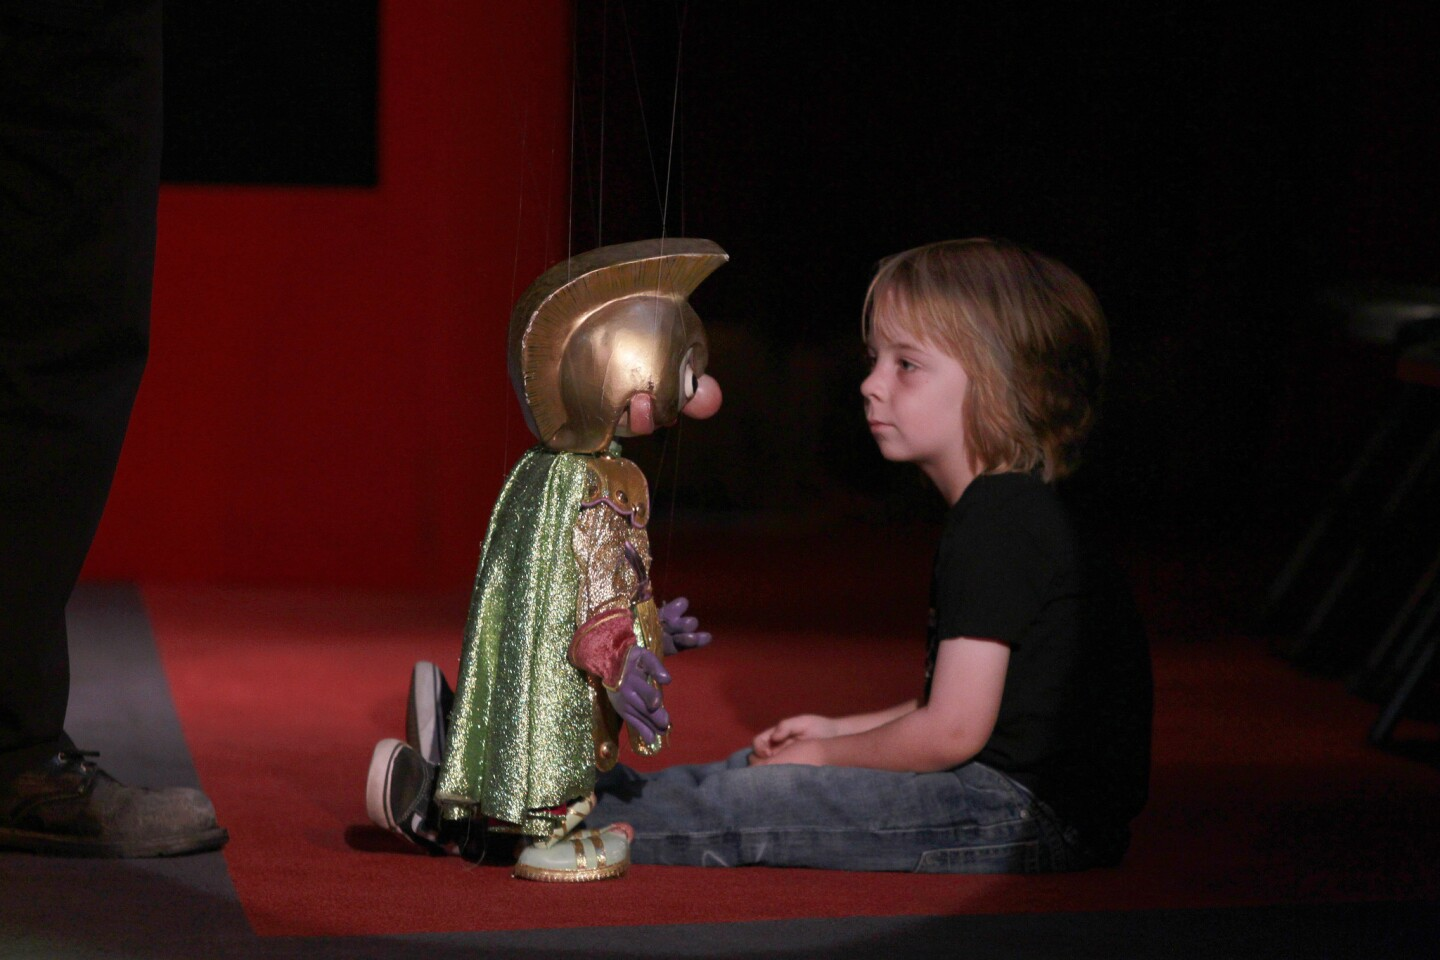 Shane McCullough, 4, comes face to face with a puppet during a show at the Bob Baker Marionette Theater in Echo Park.